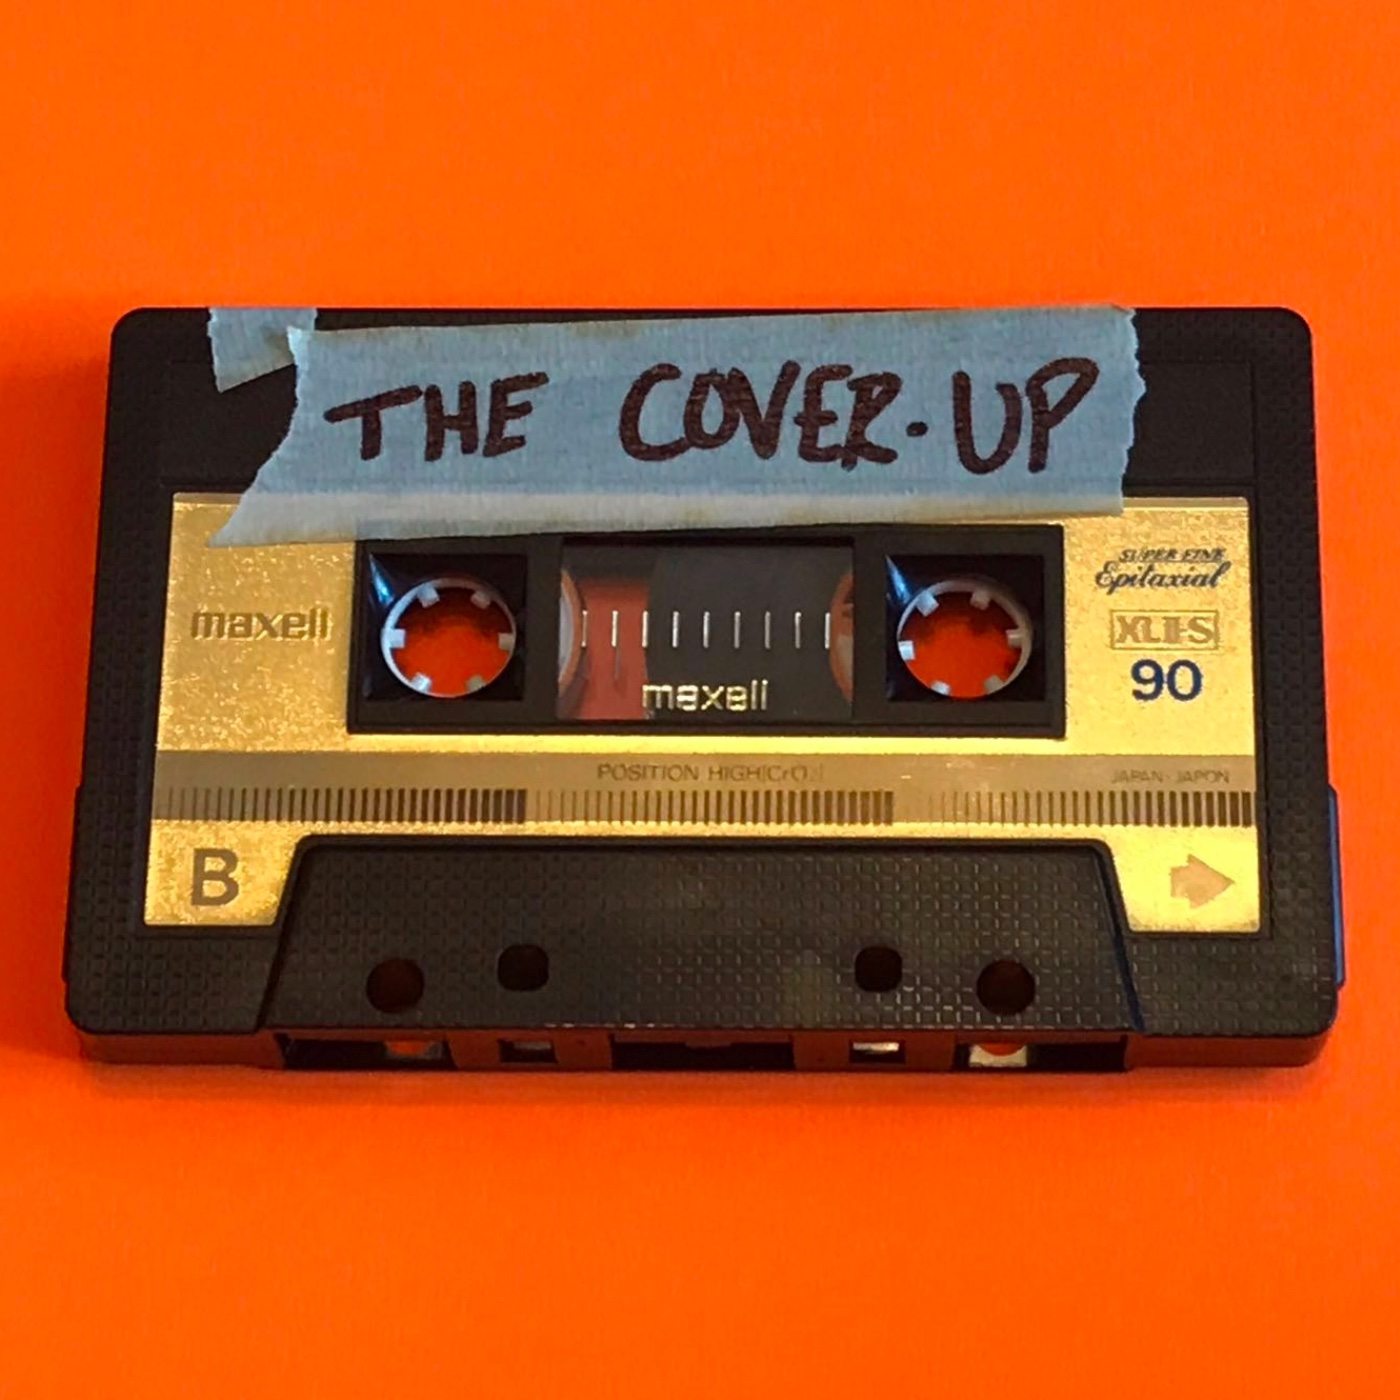 The CoverUp show art